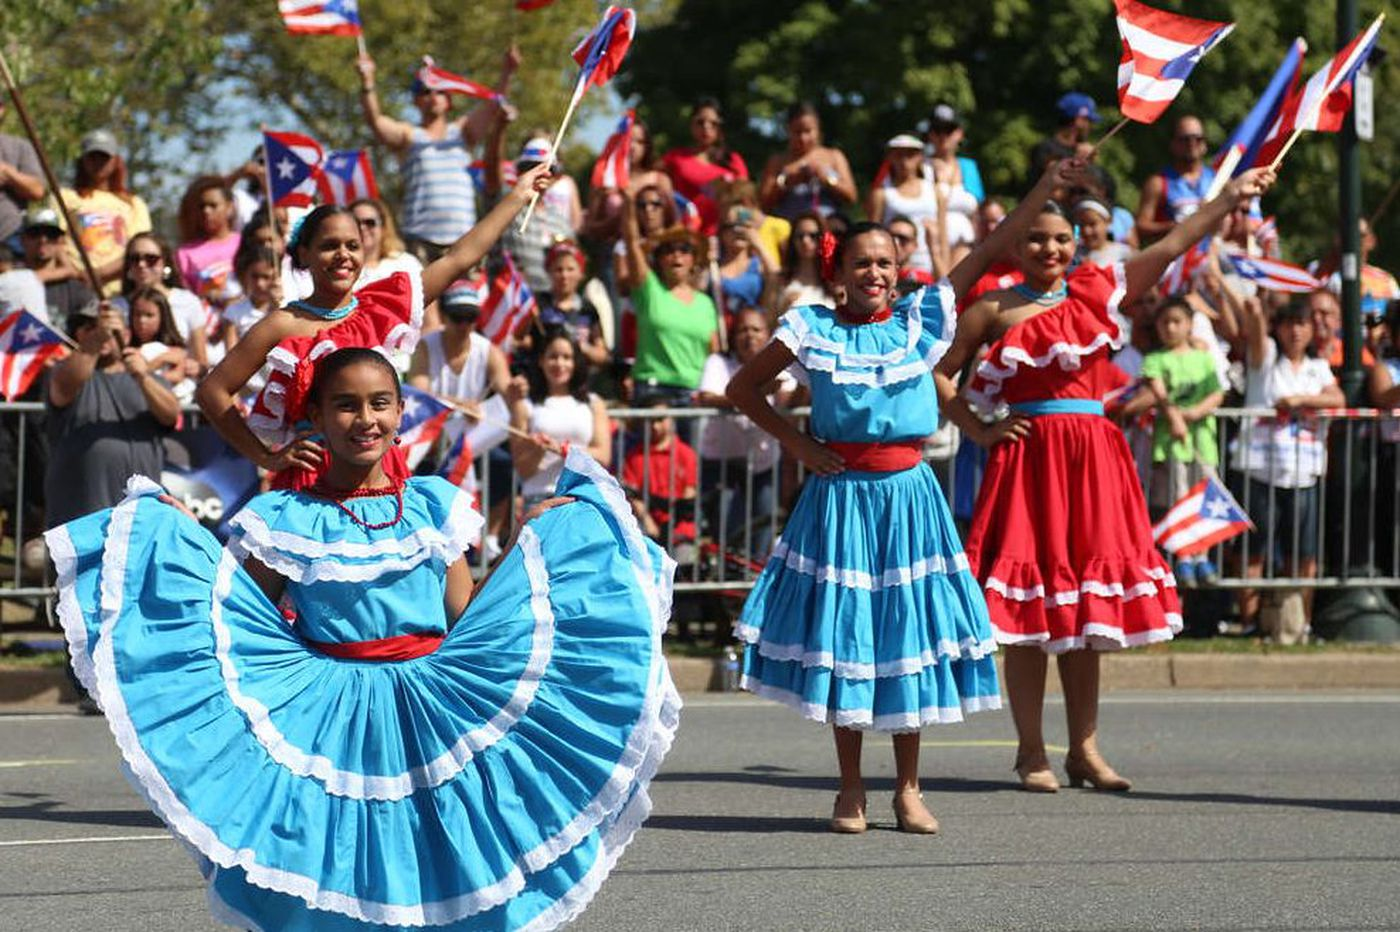 Puerto Rican Day Parade, Fringe's biggest show, a Corgi meetup, and other things to do in Philadelphia Sept. 22 to 28